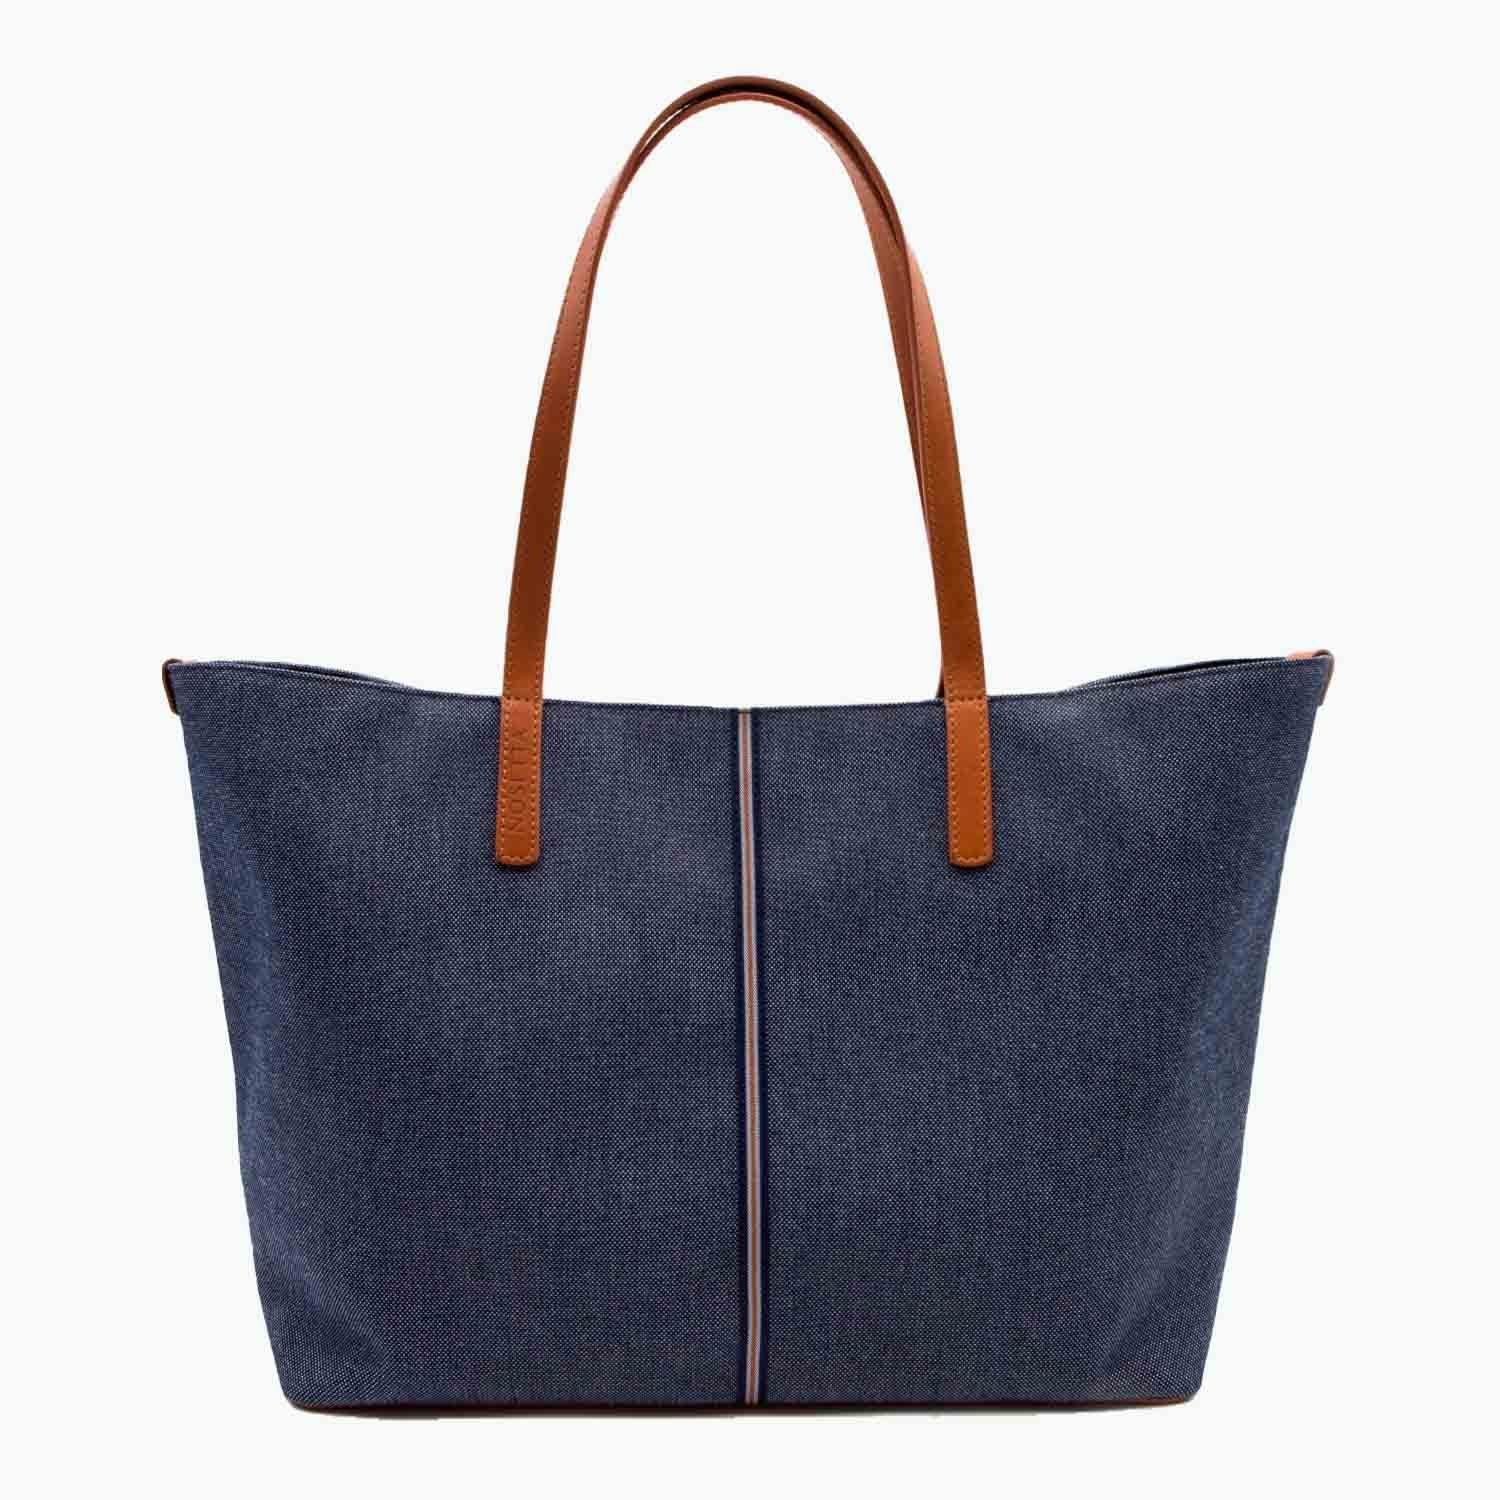 Celesia Medium Tote Denim and Leather